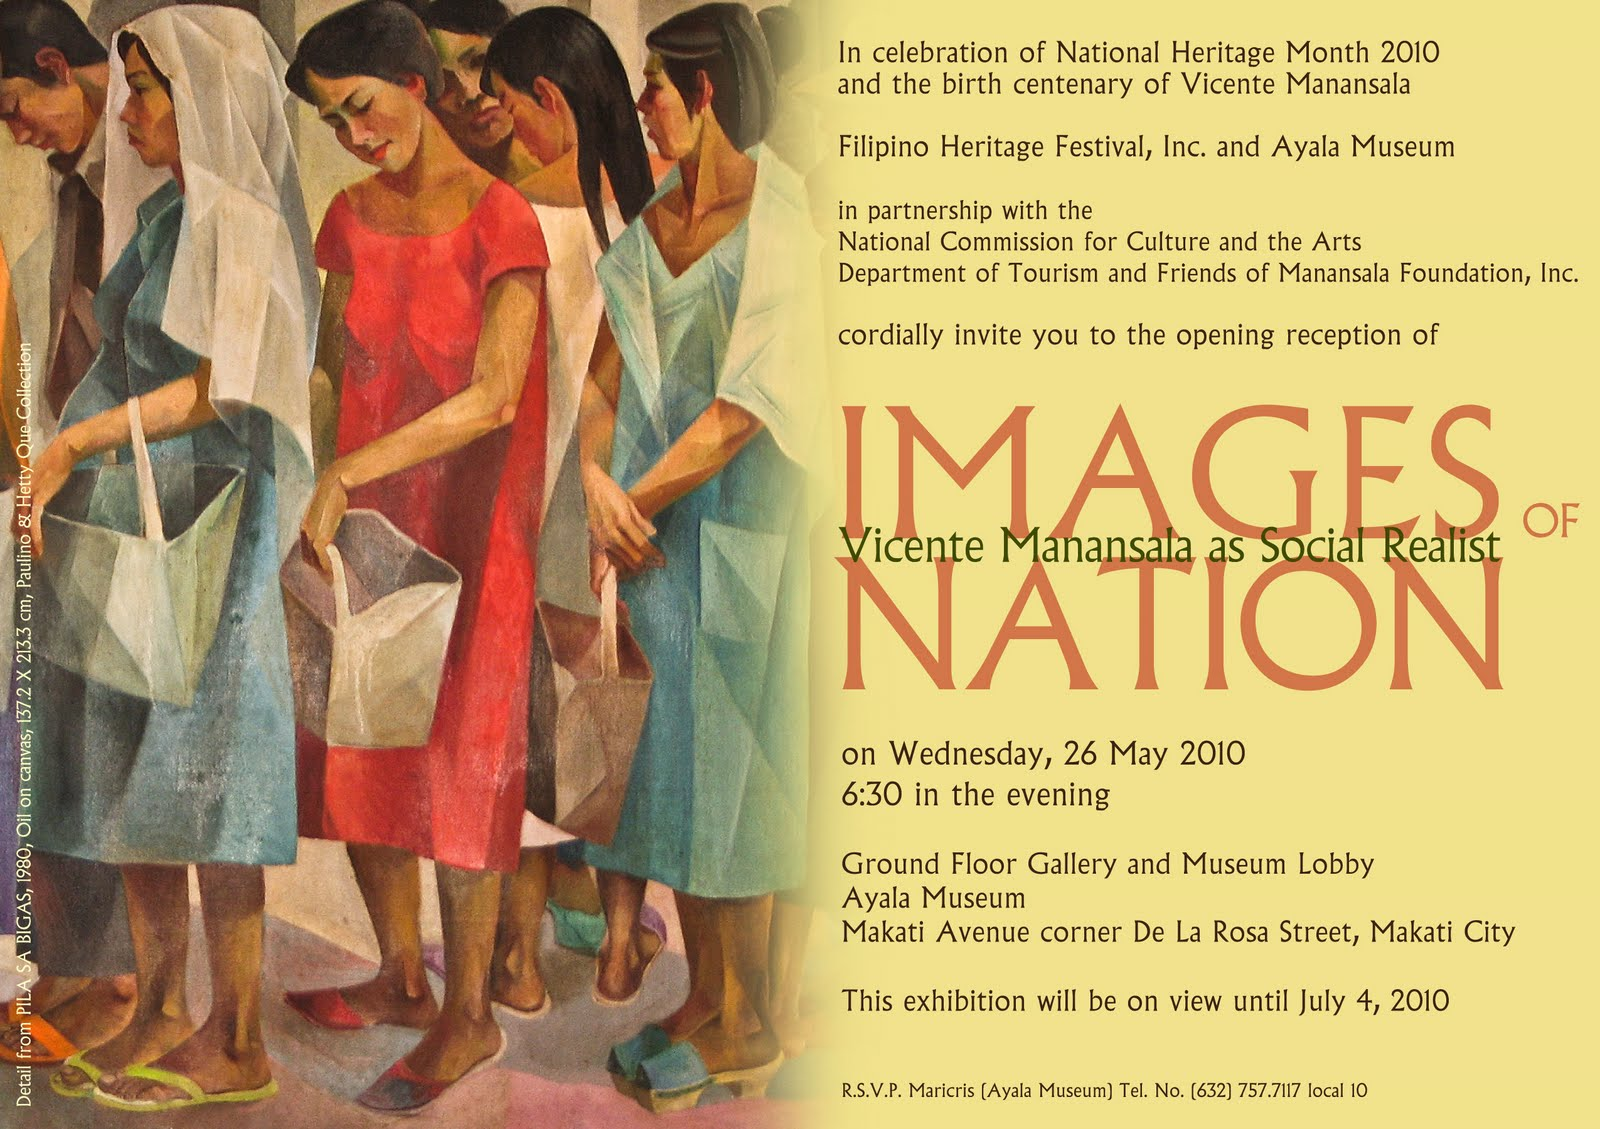 Ayala museum presents images of nation vicente manansala as social realist may 26 july 4 2010